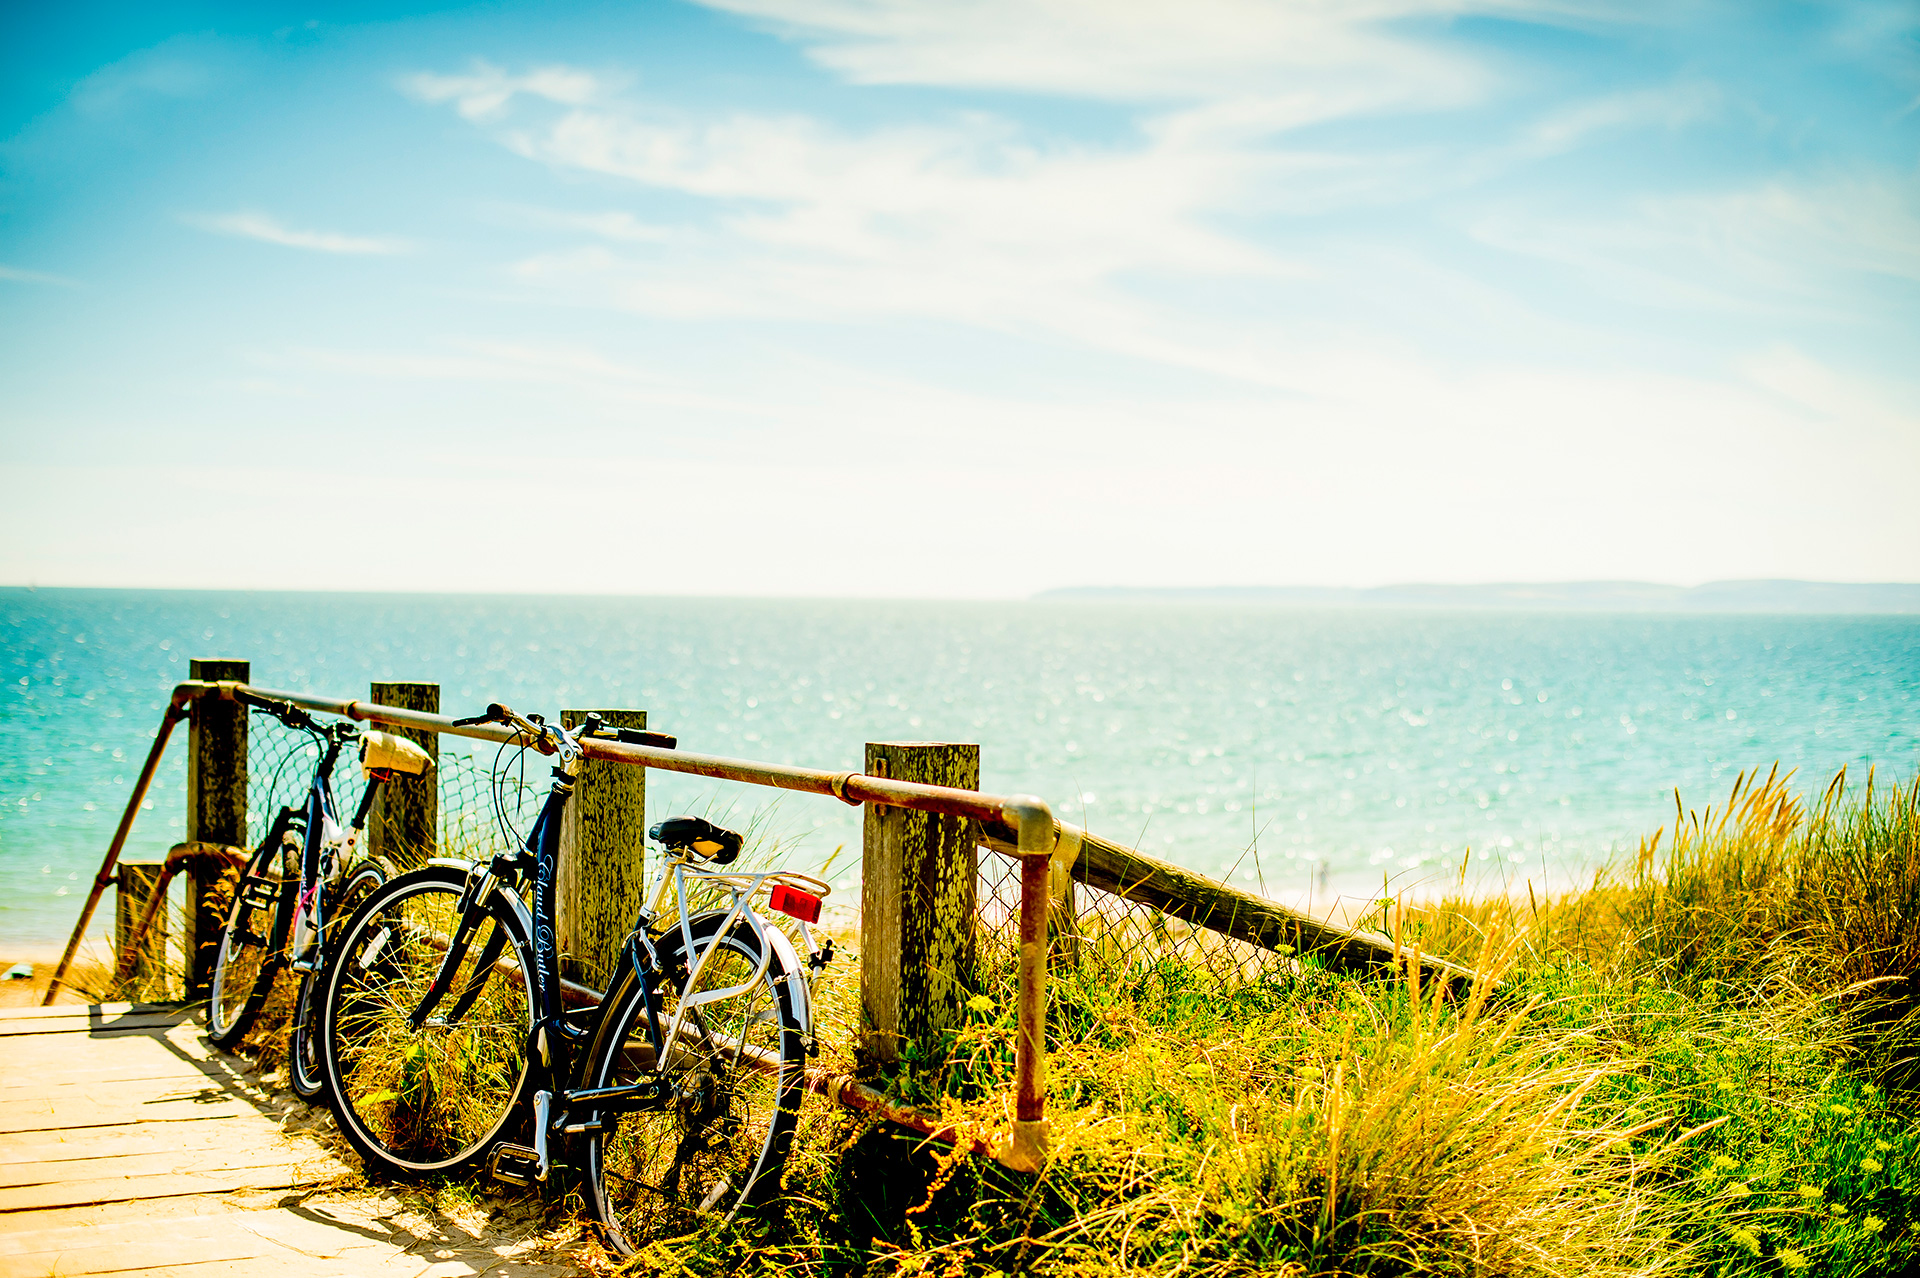 Bikes leaning on a fence on the overcliff